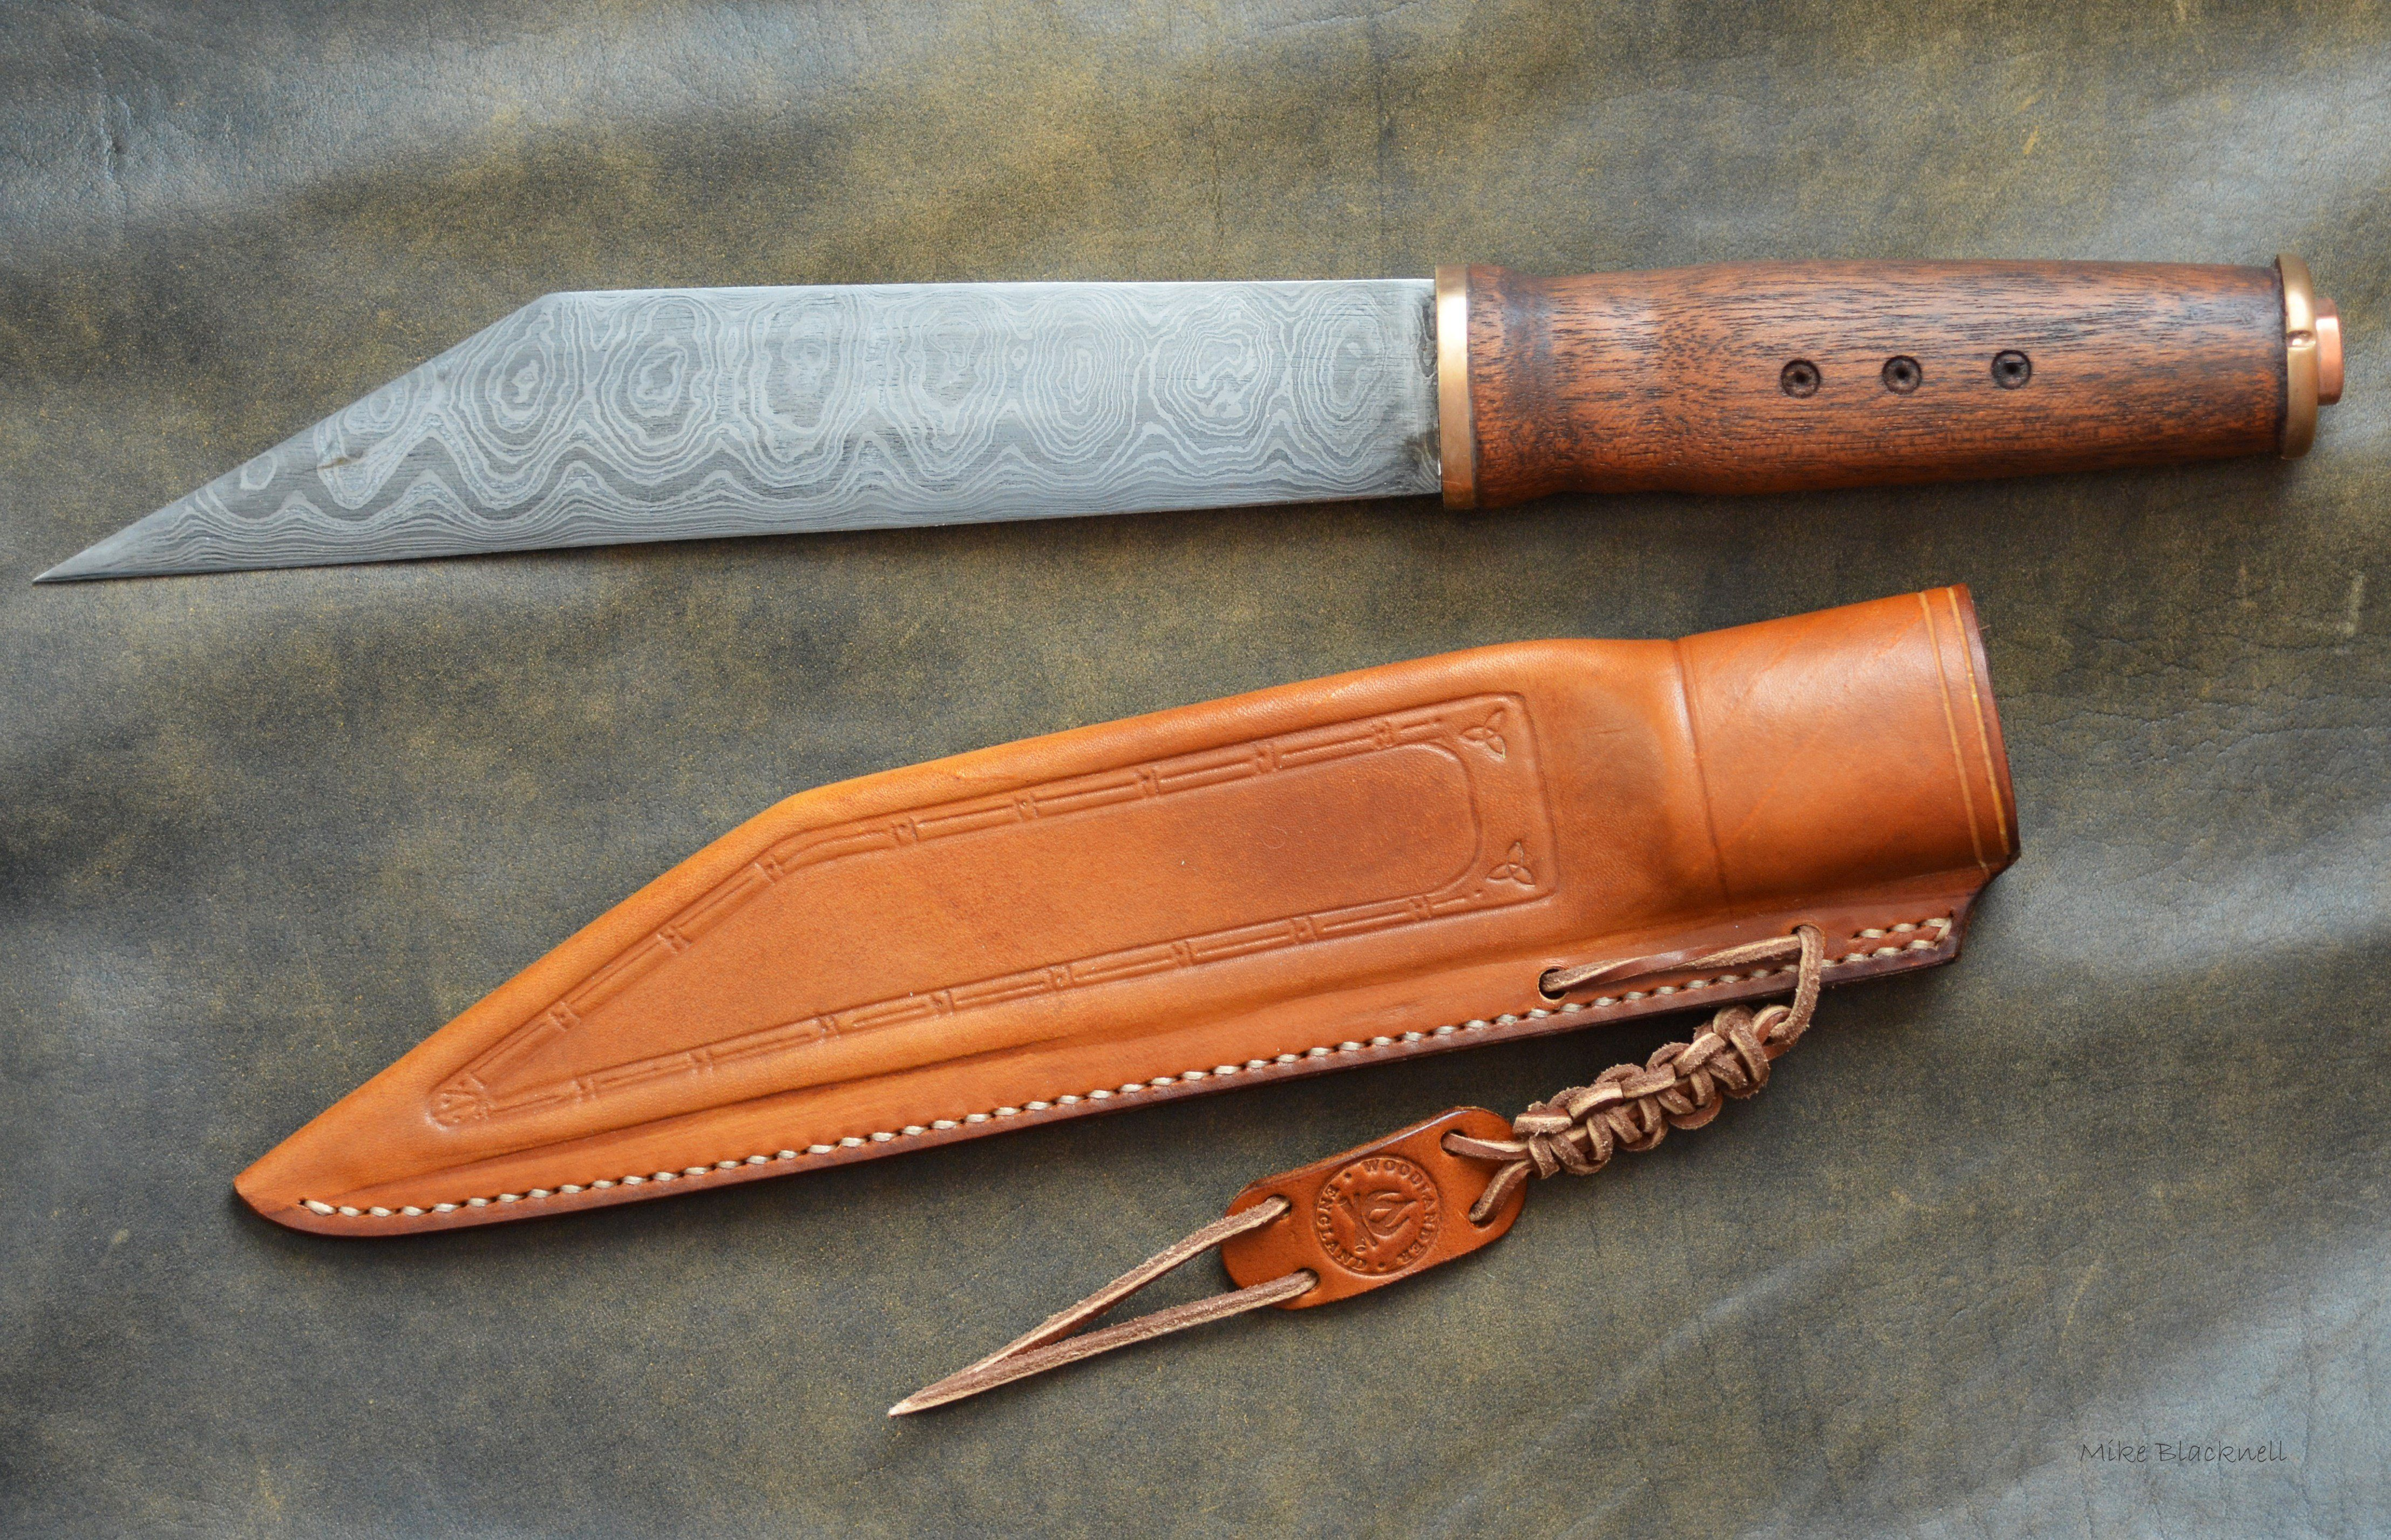 This Viking Seax Knife Was Made From A Pattern Welded Steel Billet It Was Then Heated And Hardened In Oil And Tempered And Que Seax Knife Knife Template Knife